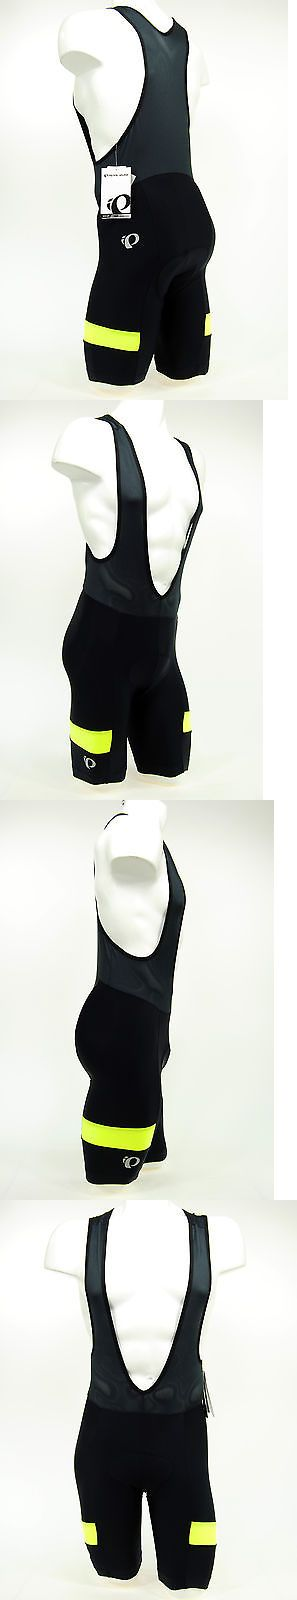 Shorts 177853: Pearl Izumi 2017 Escape Quest Splice Bike Cycling Bib Shorts Black Yellow,Medium -> BUY IT NOW ONLY: $49.88 on eBay!